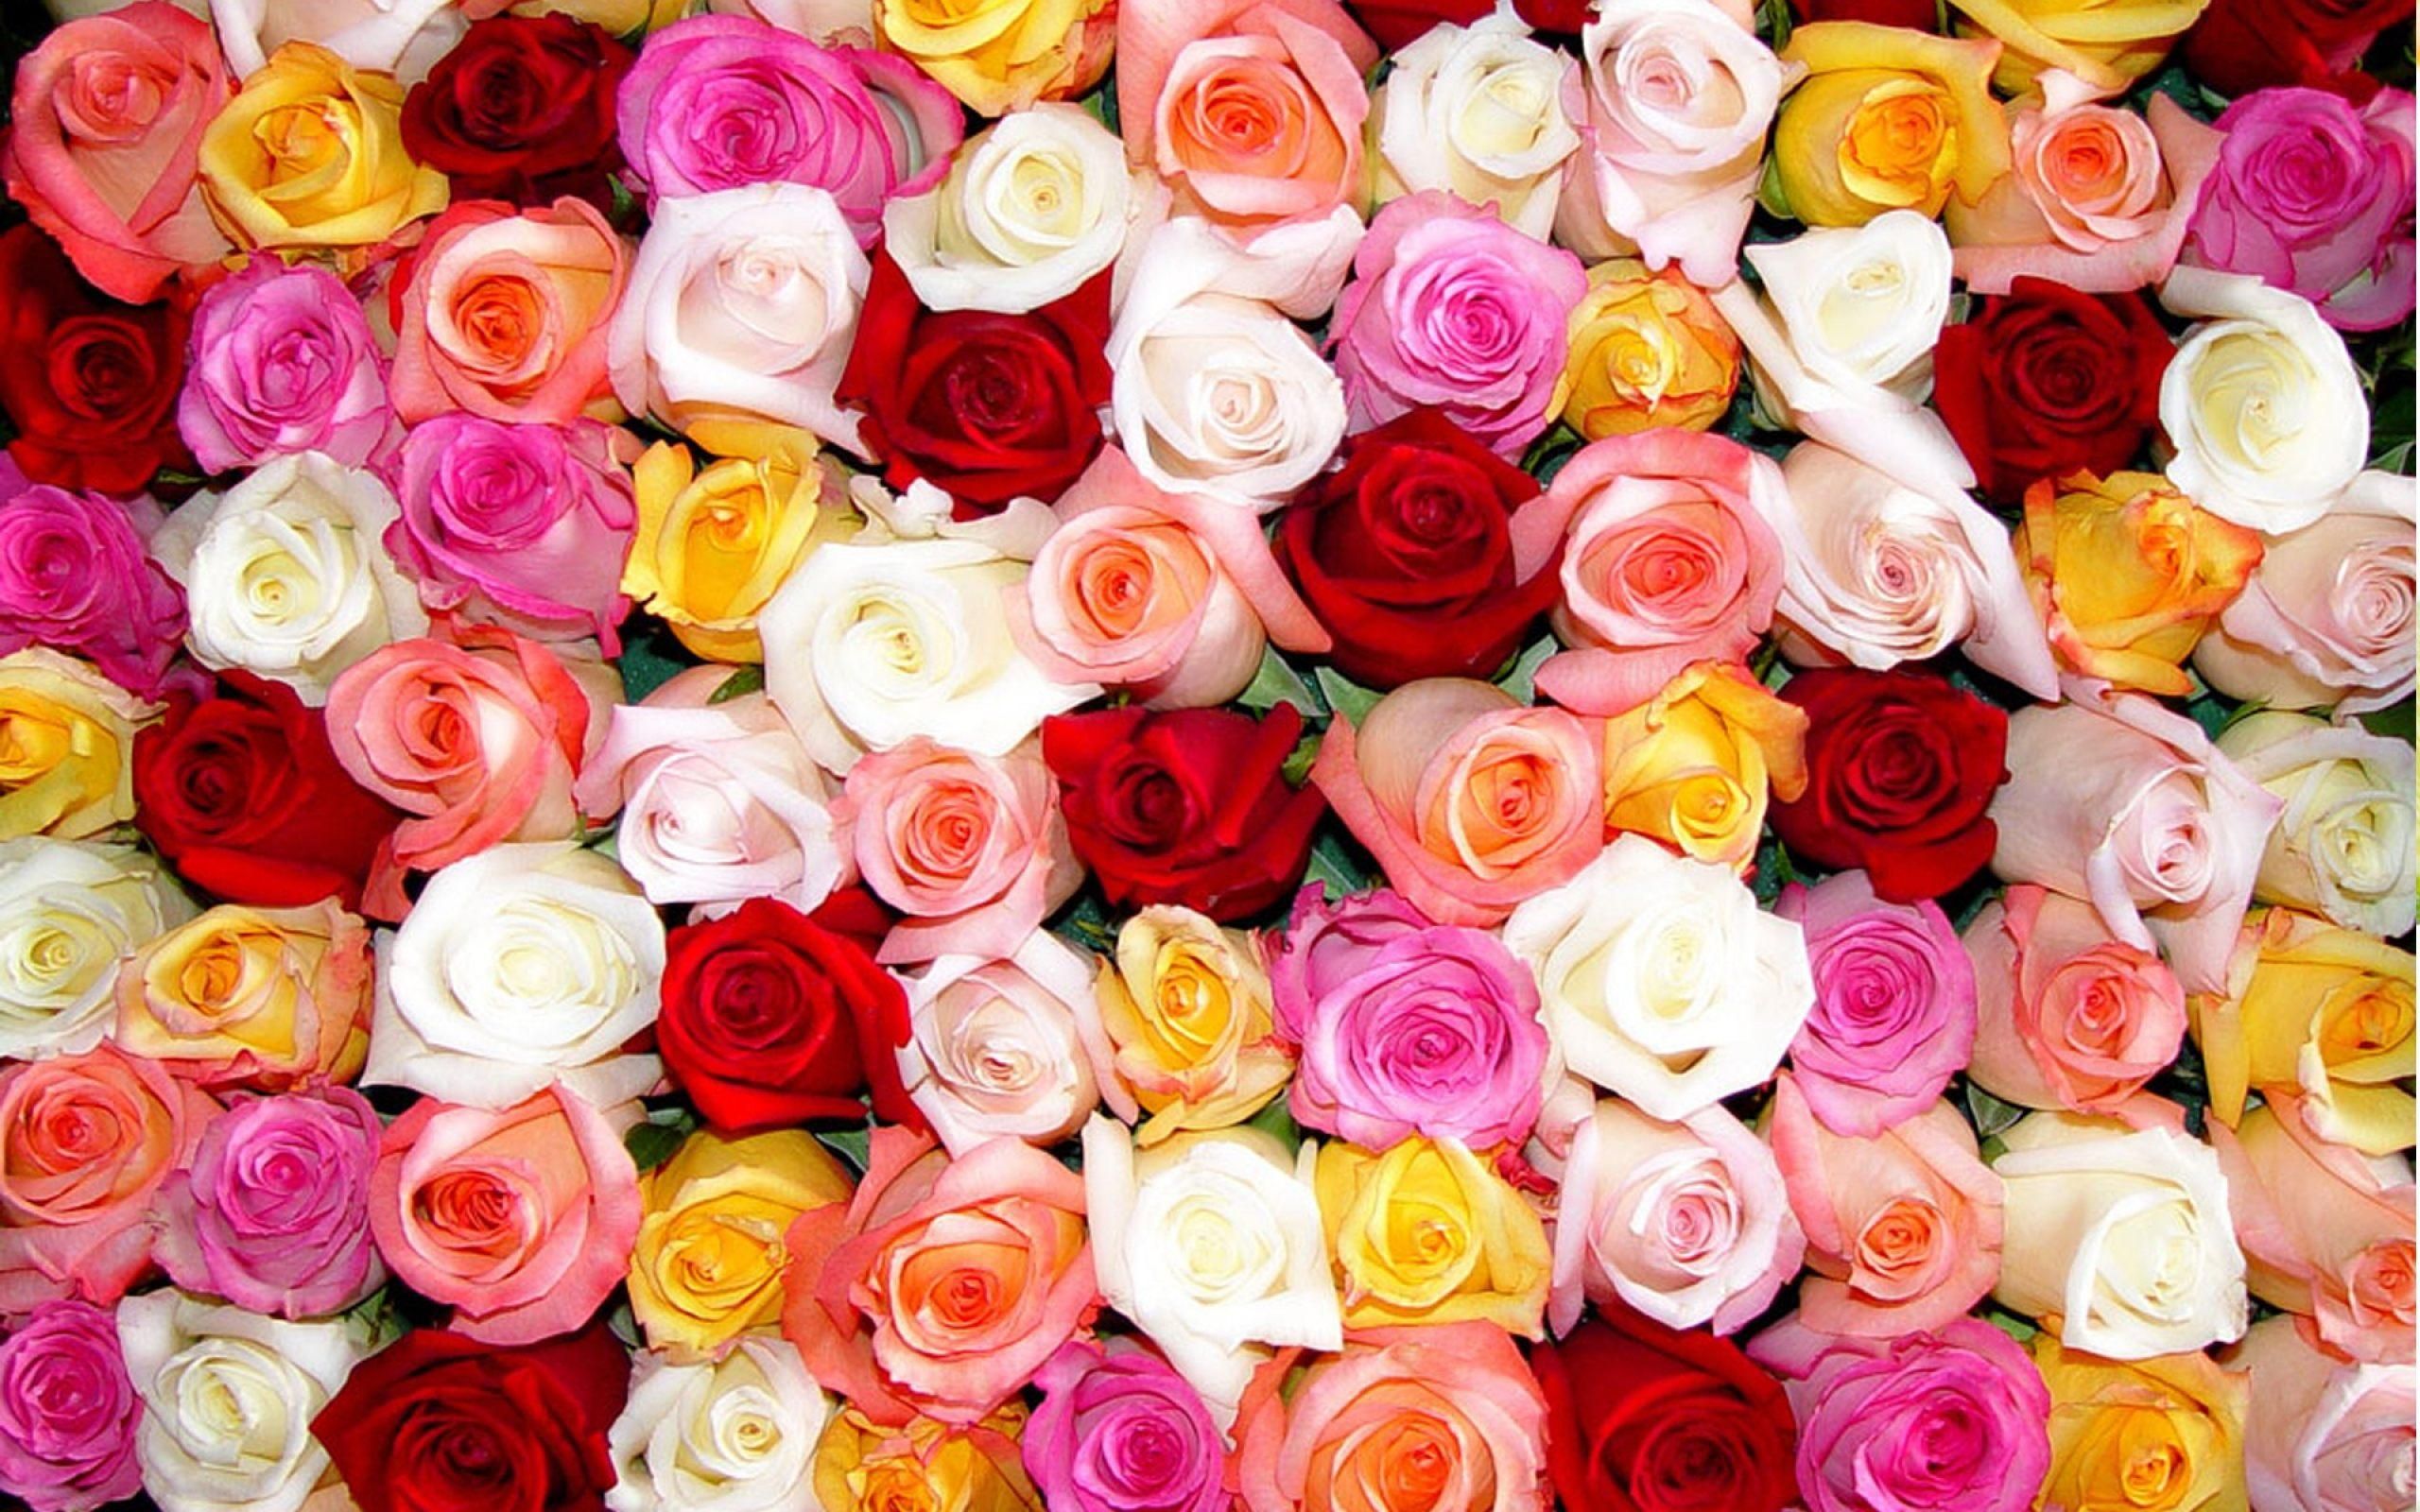 Rose Color Flowers Wallpaper Full Hd Colorful For Computer